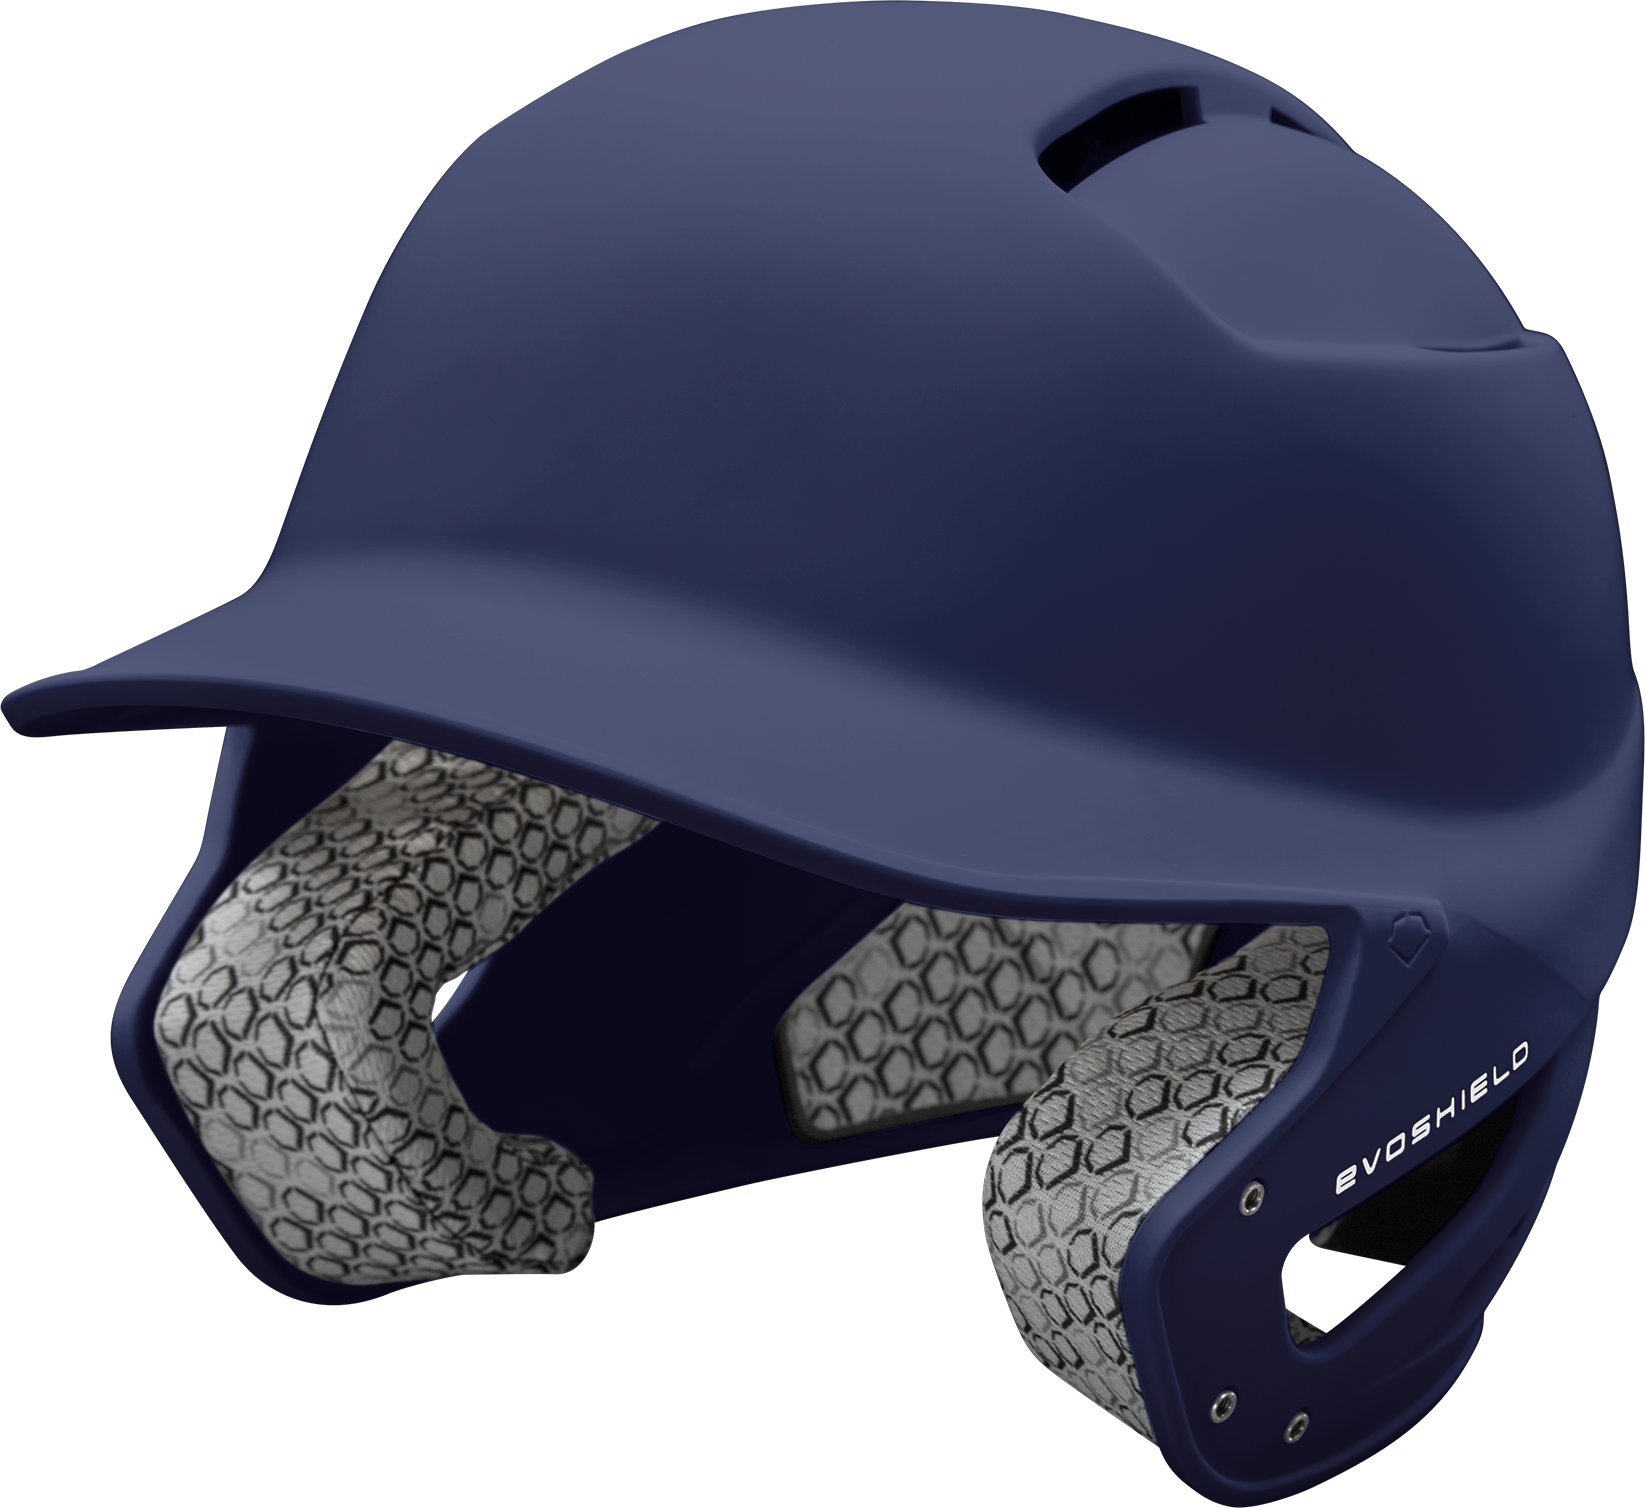 Baseball helmet png. Evoshield impact matte batting